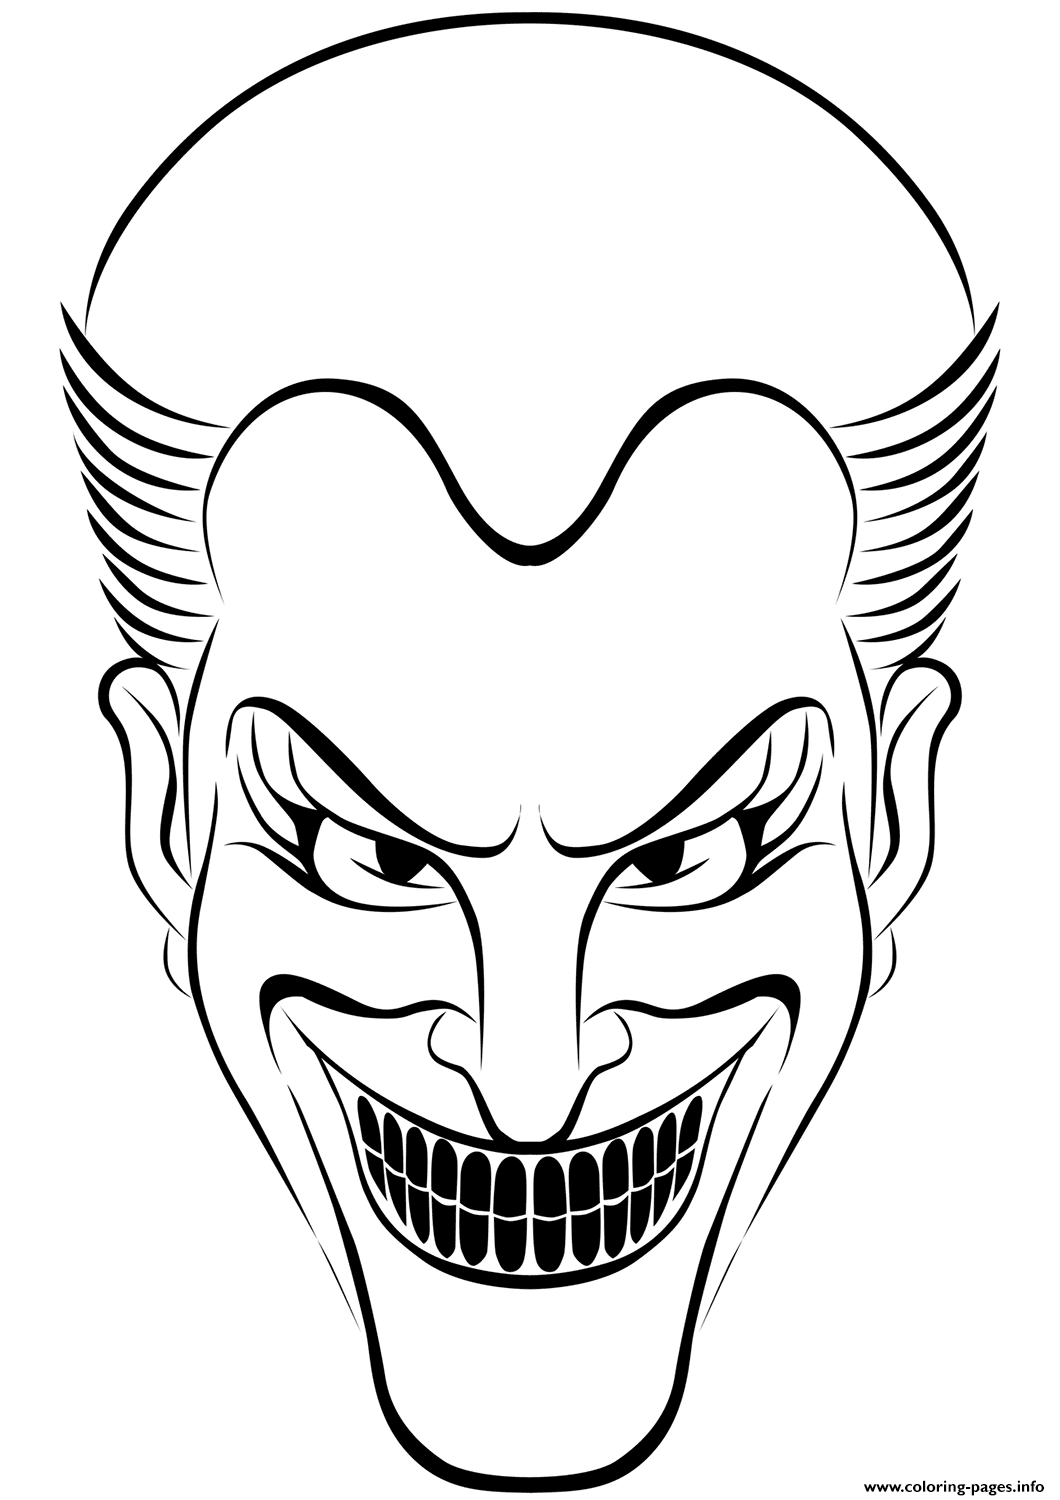 Joker Halloween Coloring Pages Printable